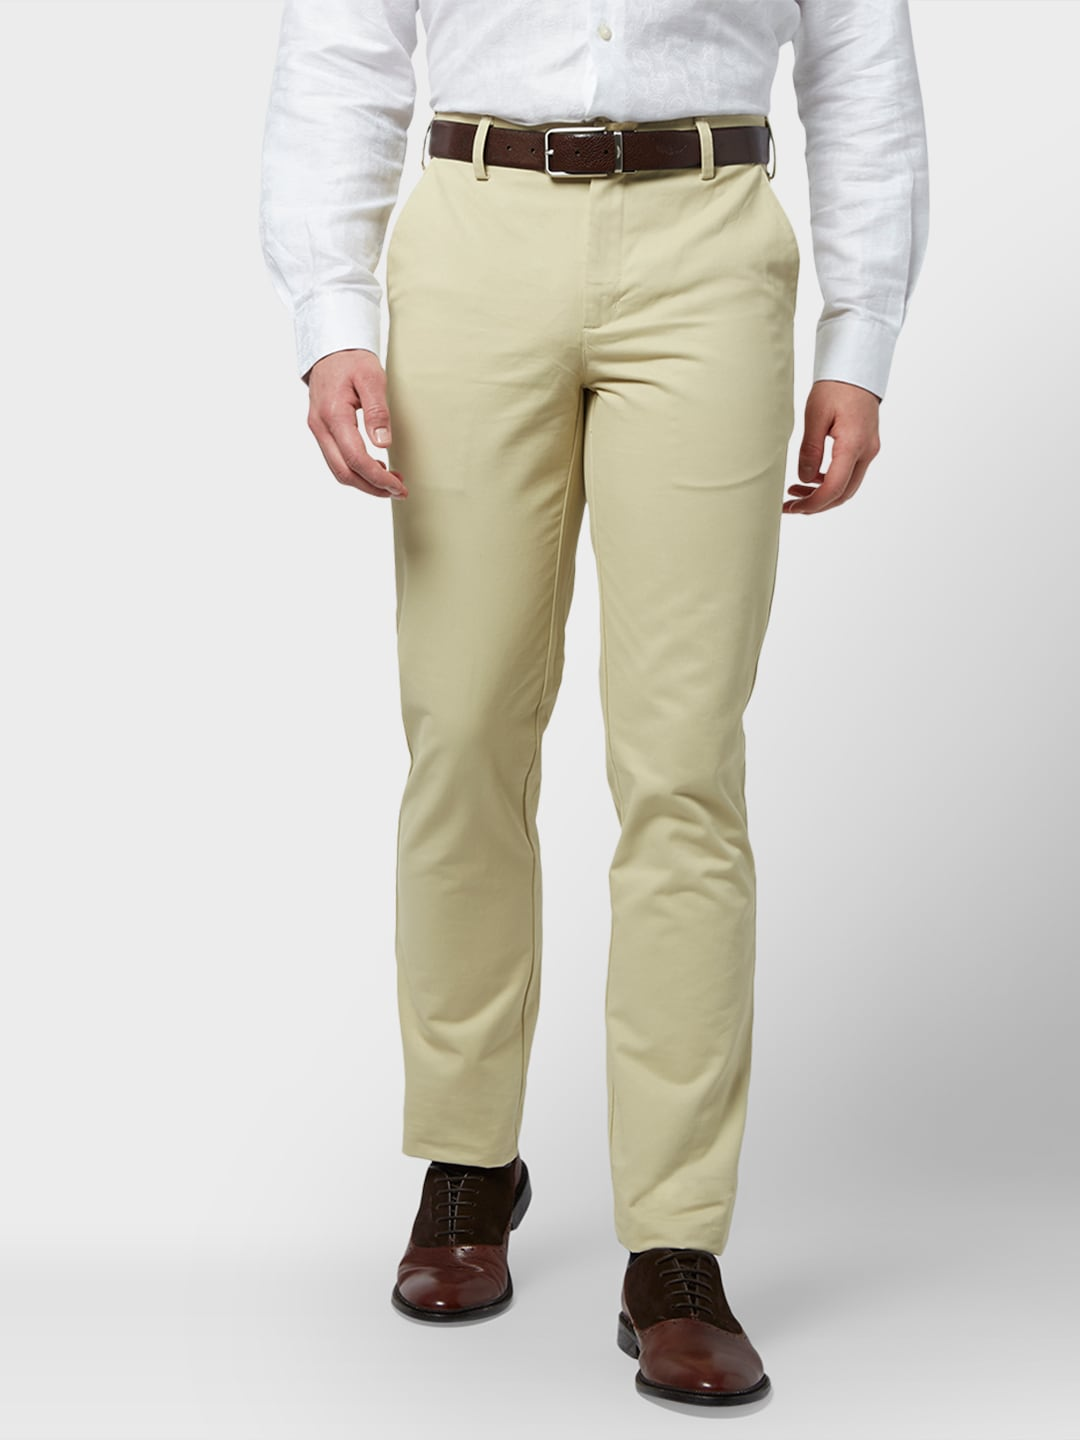 a3530eec310 Wrinkle Free Trousers - Buy Wrinkle Free Trousers online in India